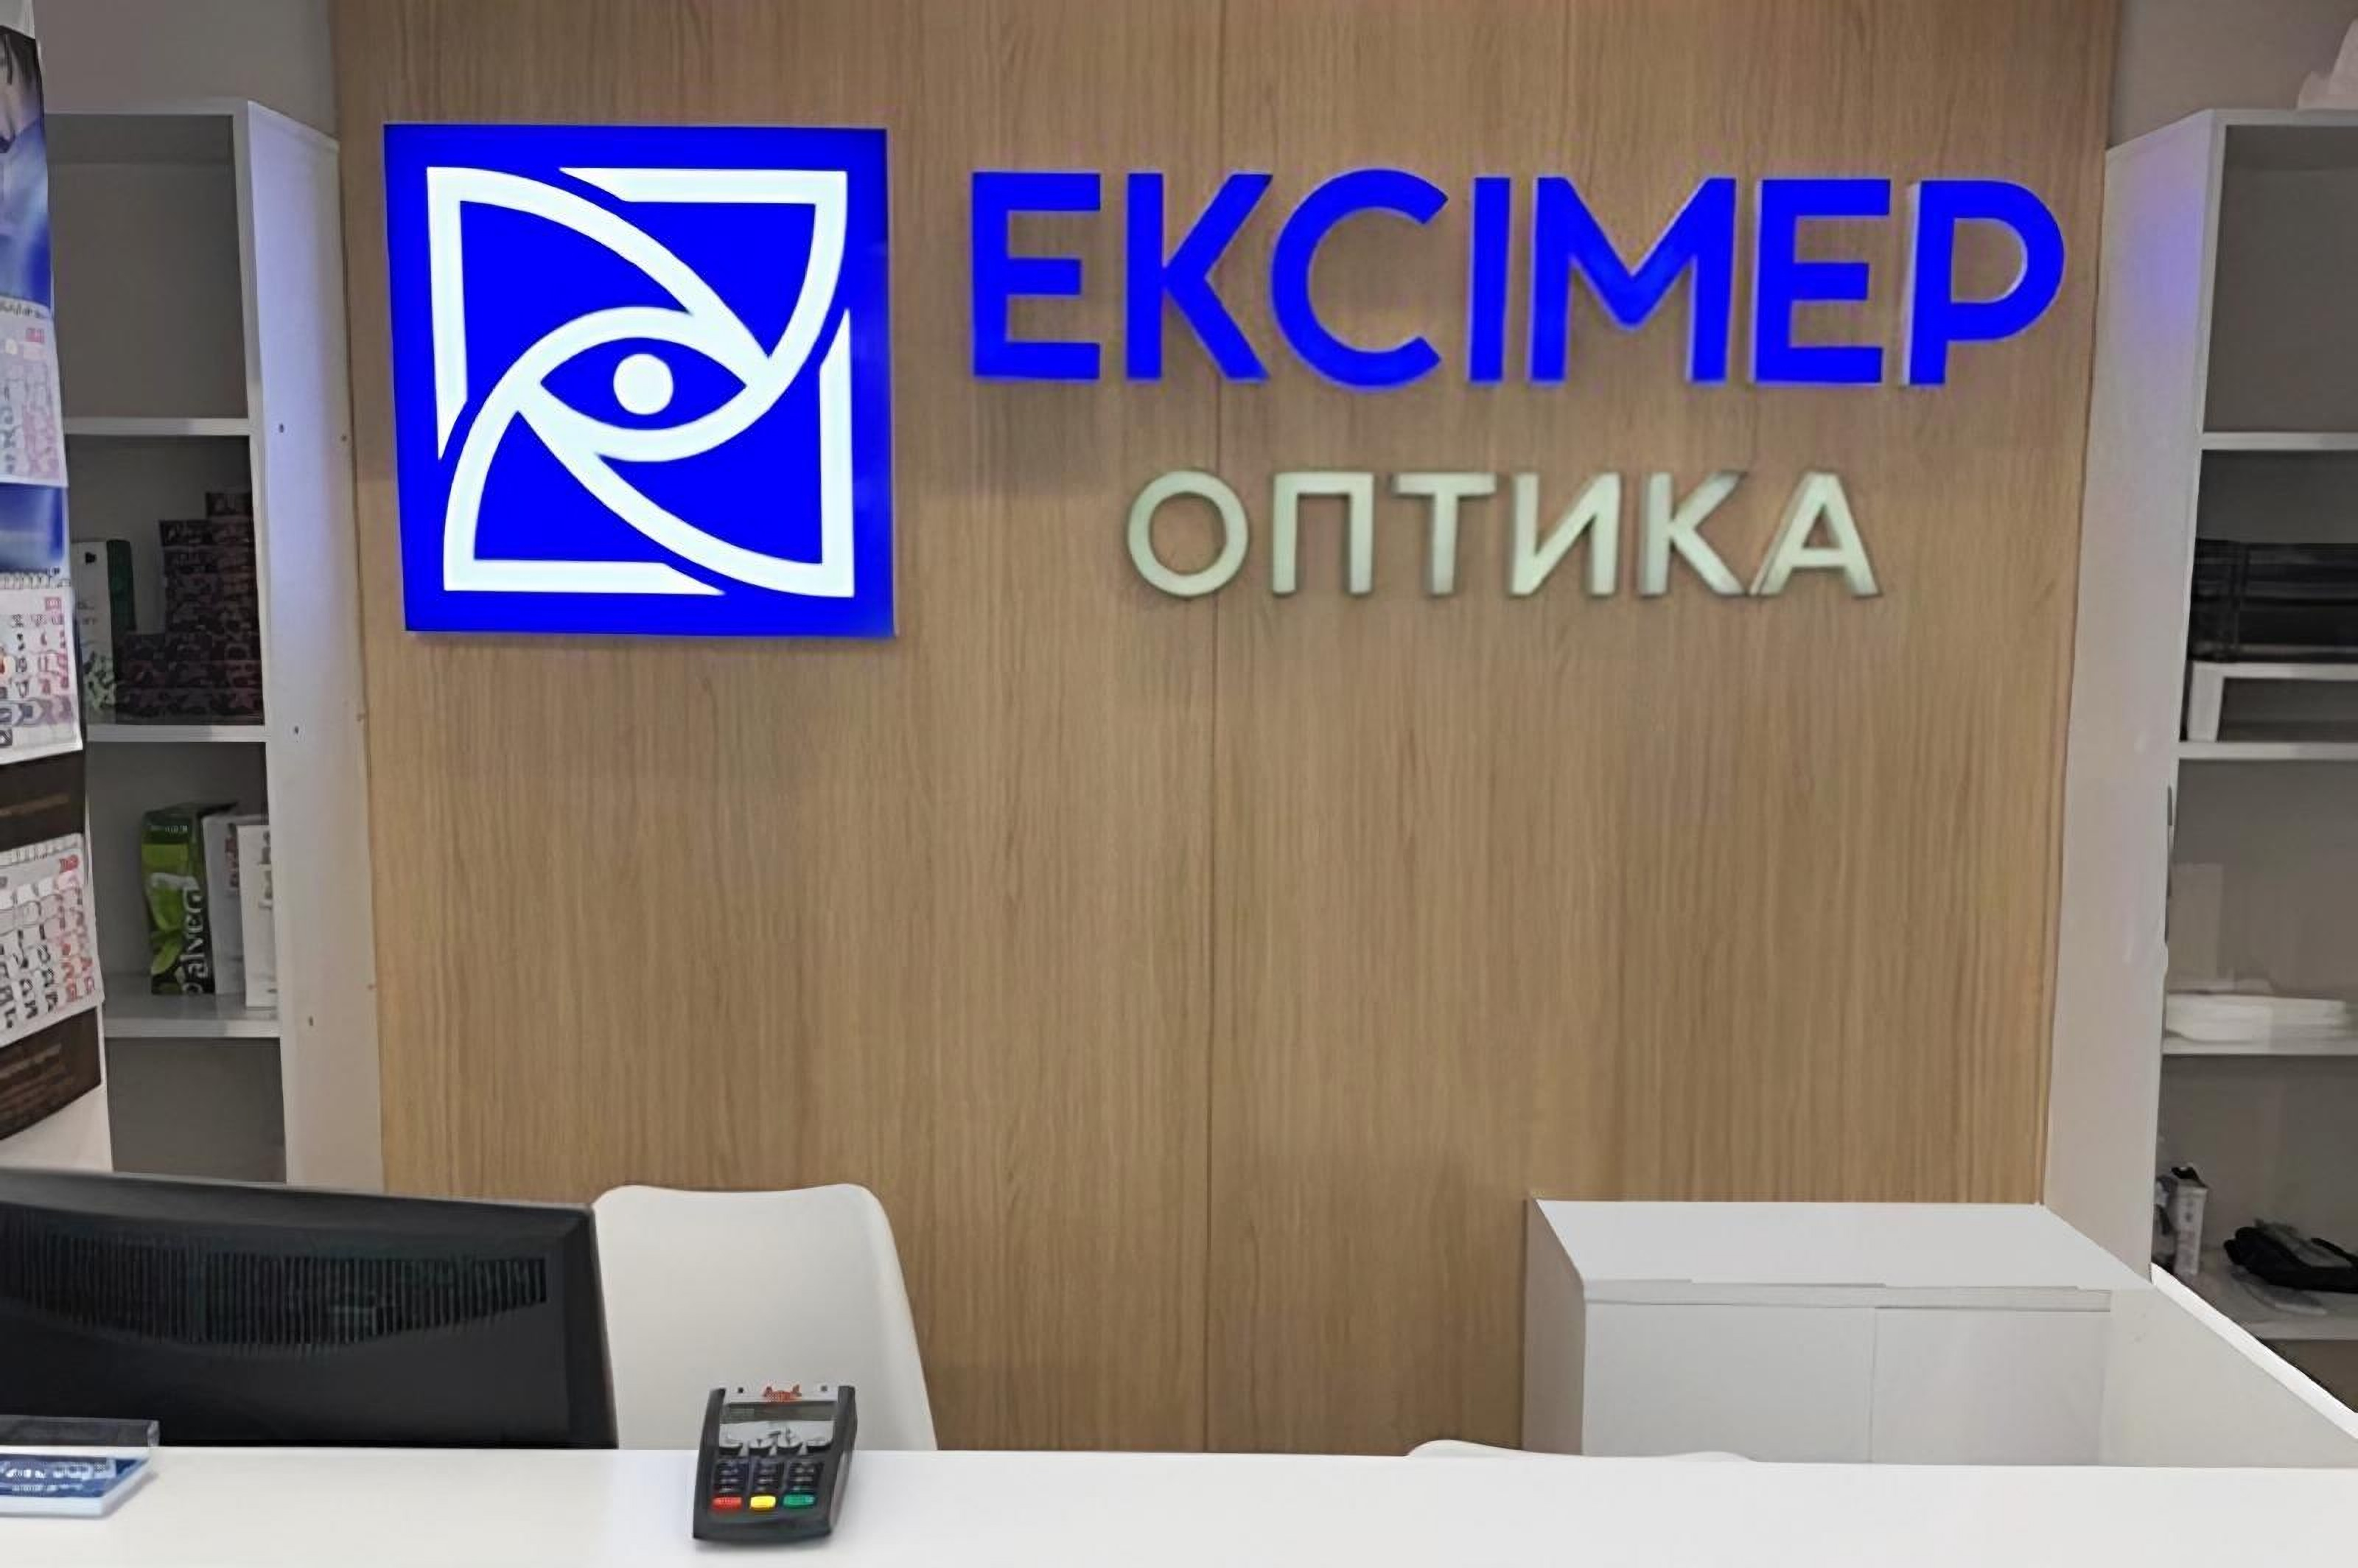 The Excimer Odessa optical store